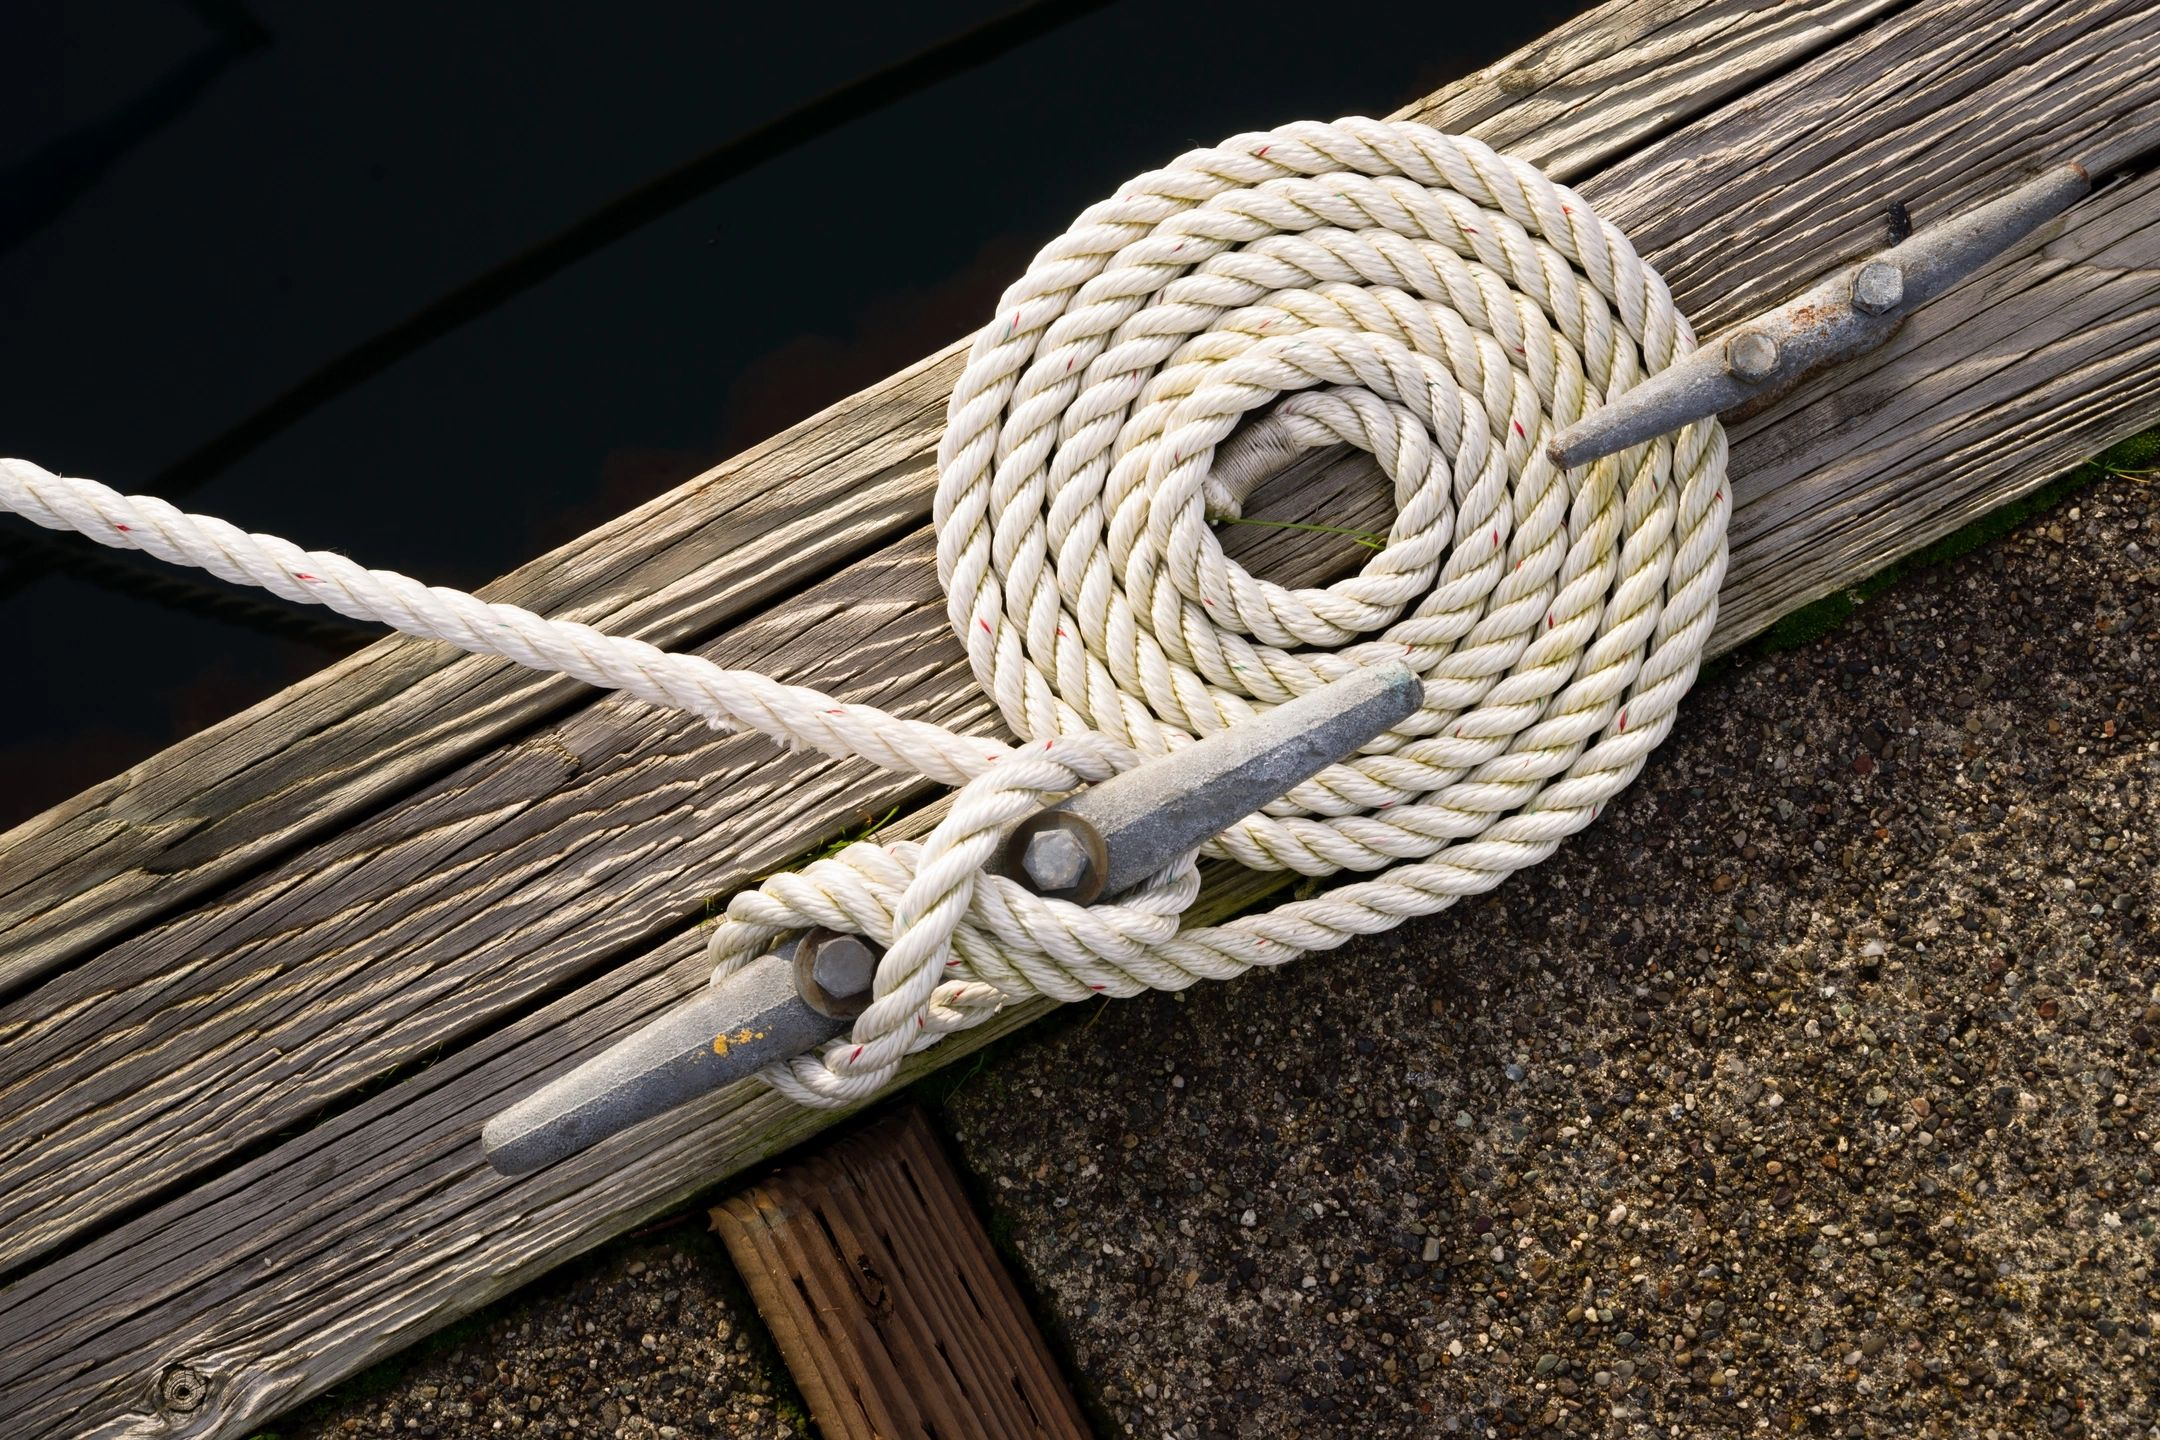 Maritime Threats – Knowledge Equates To Safety